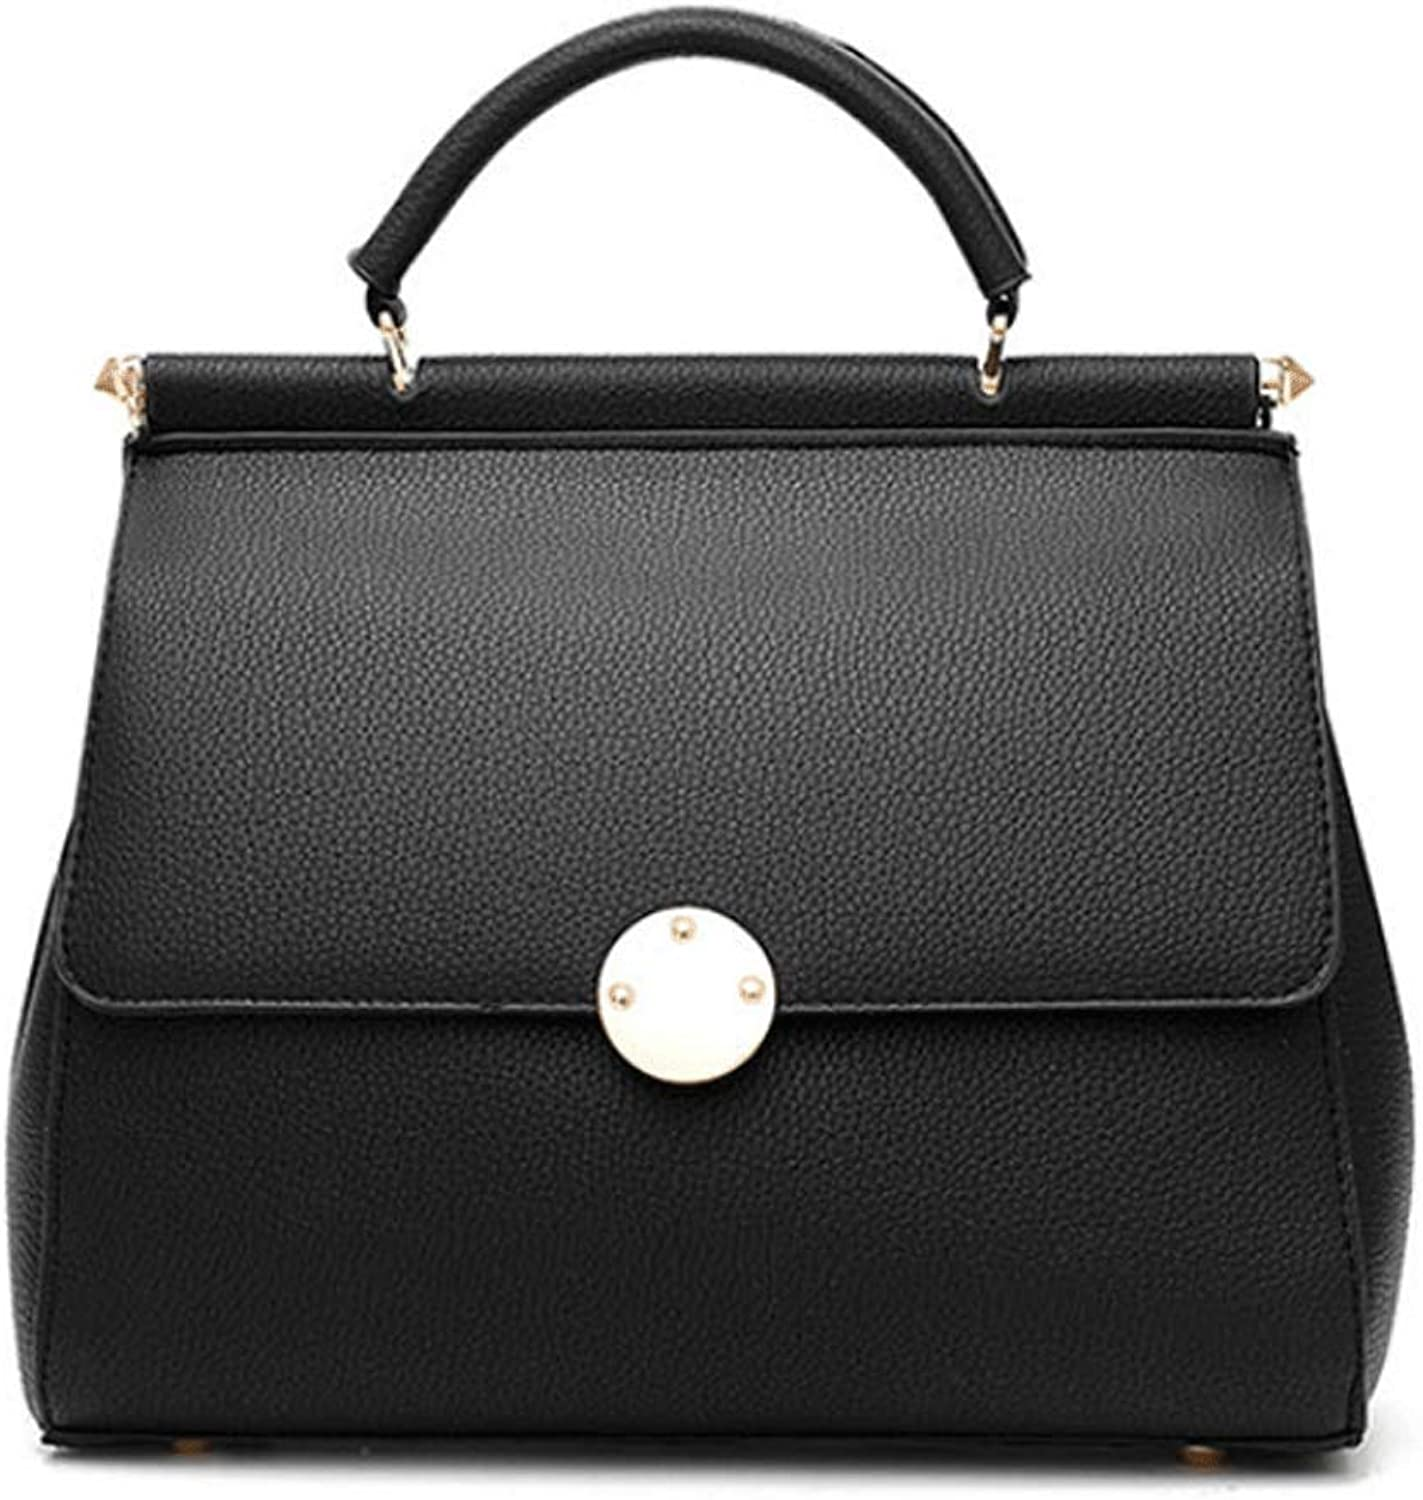 YKXIAOYU 2009 New Ladies Handbag Pu Small Square Bag Women's Single Shoulder Slant Bag Black